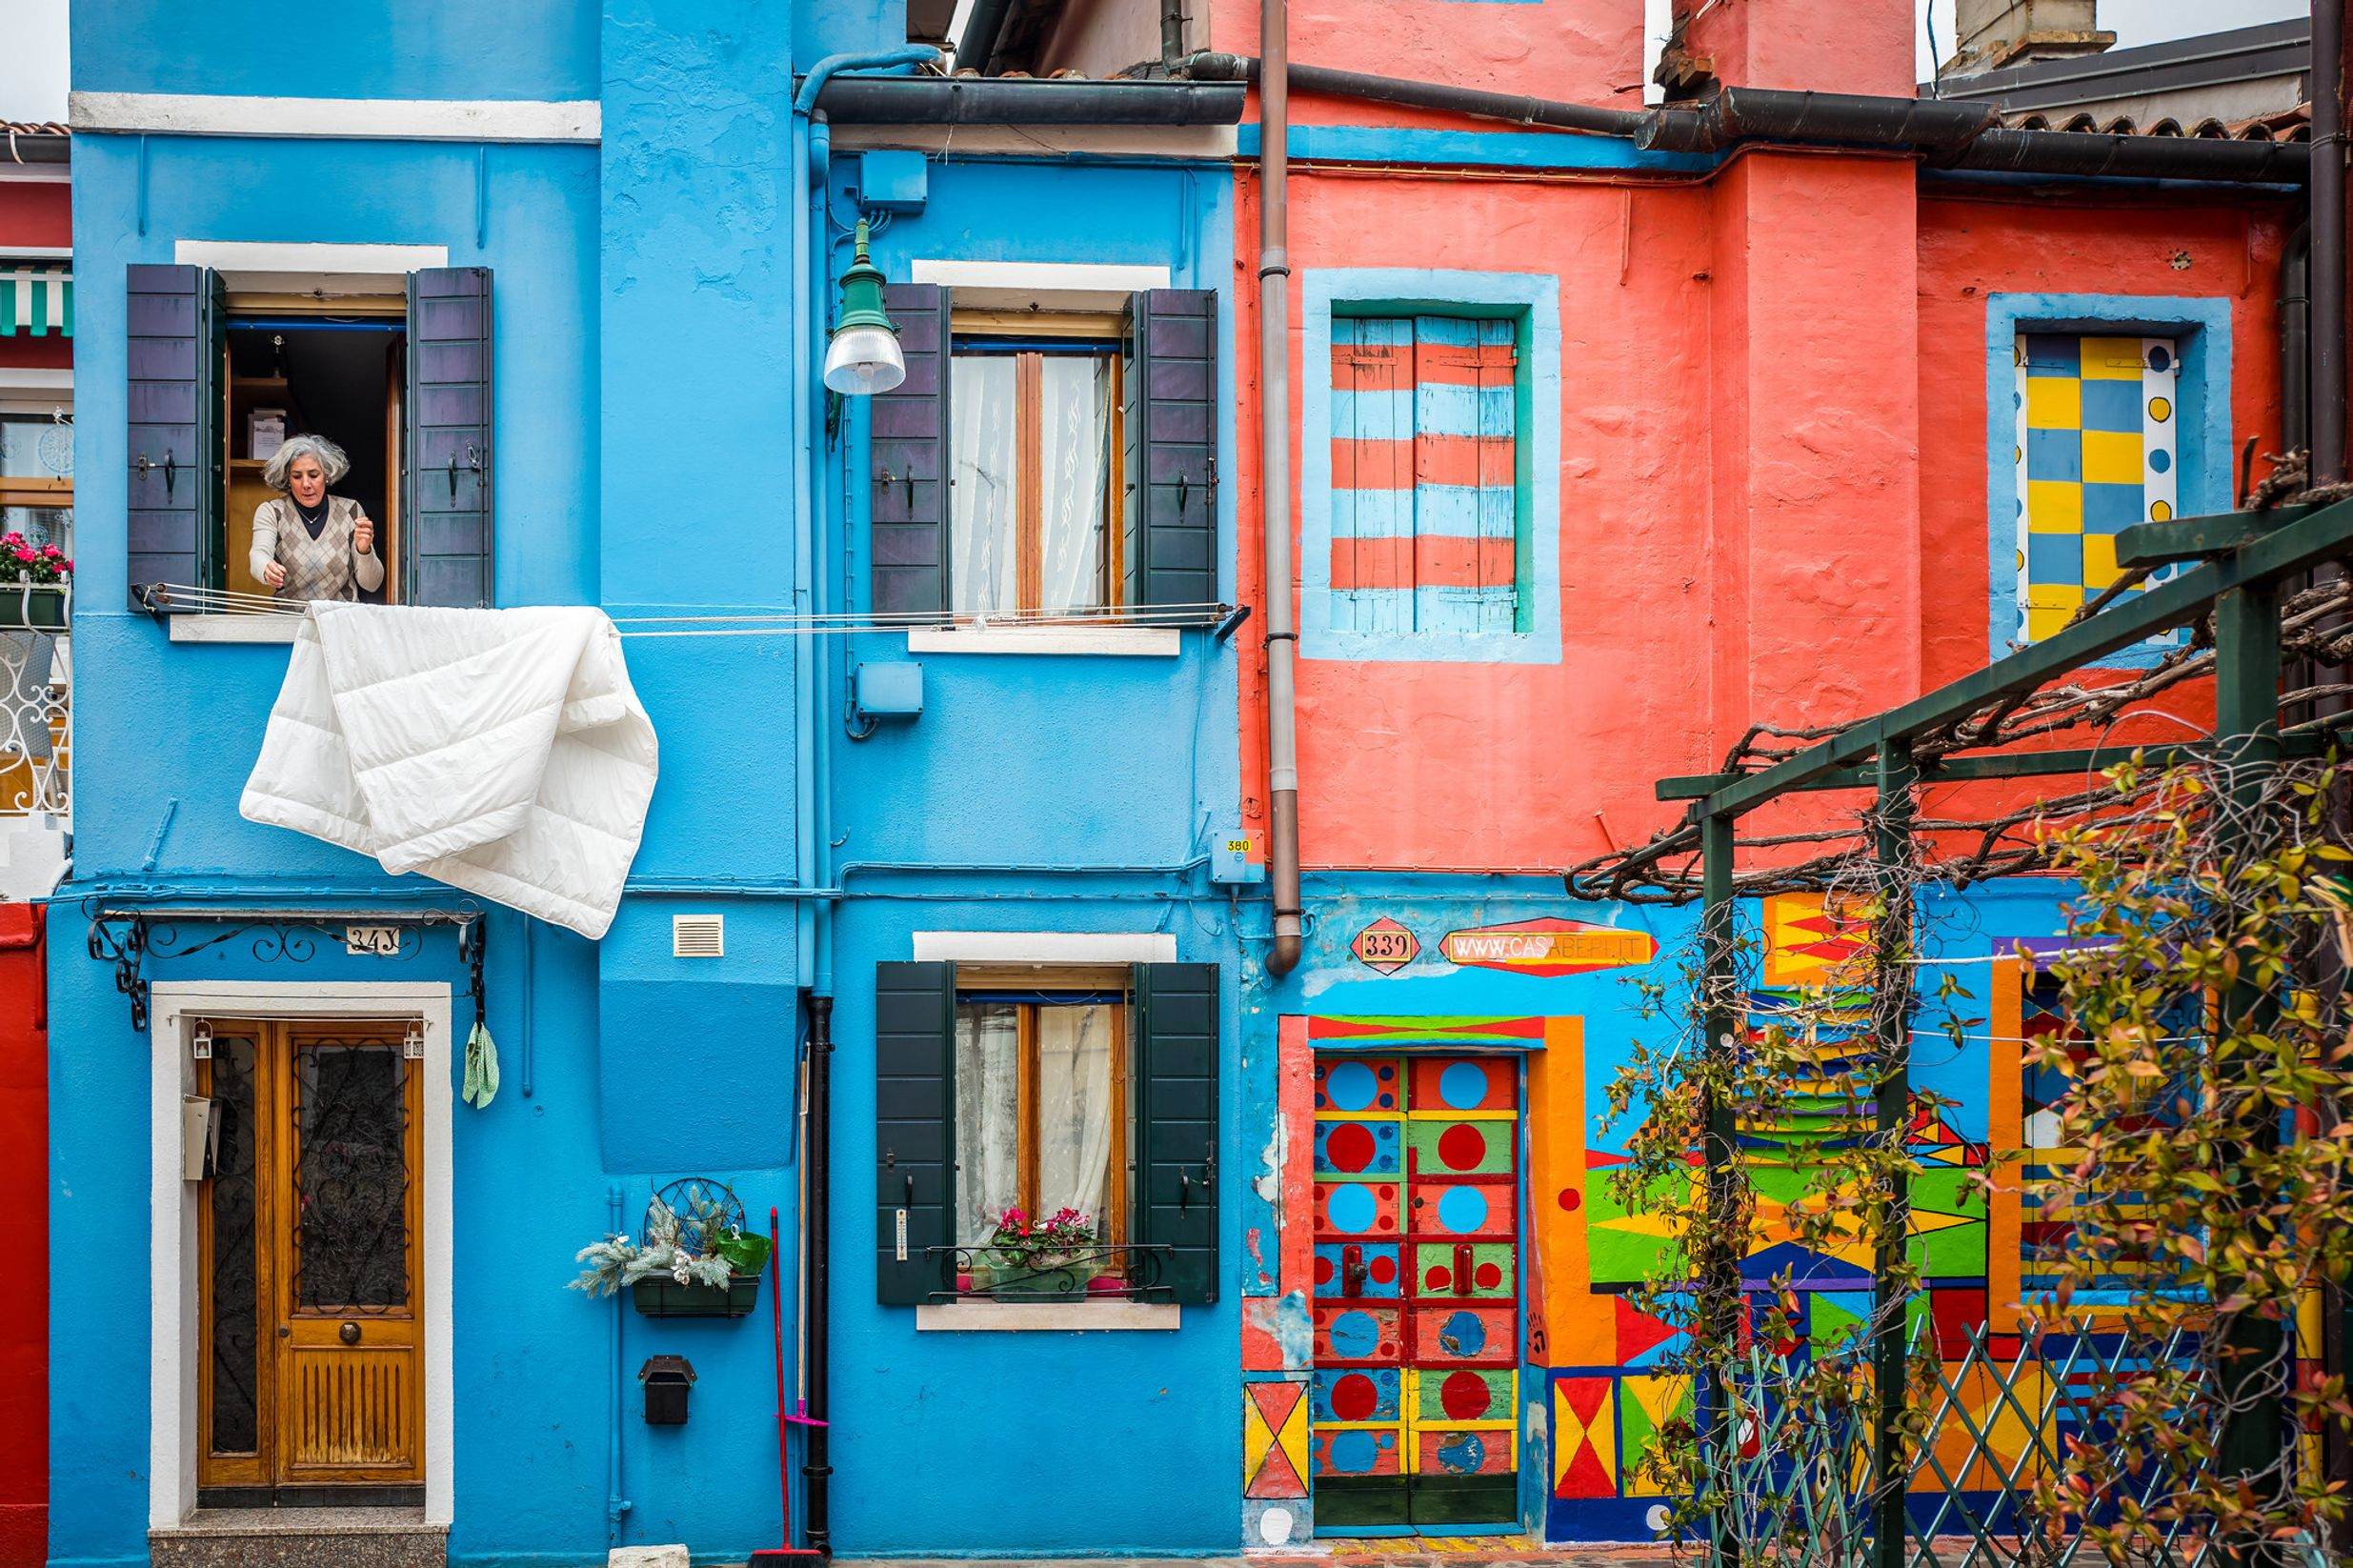 colourful houses in Burano neighbourhood in Venice, Italy.